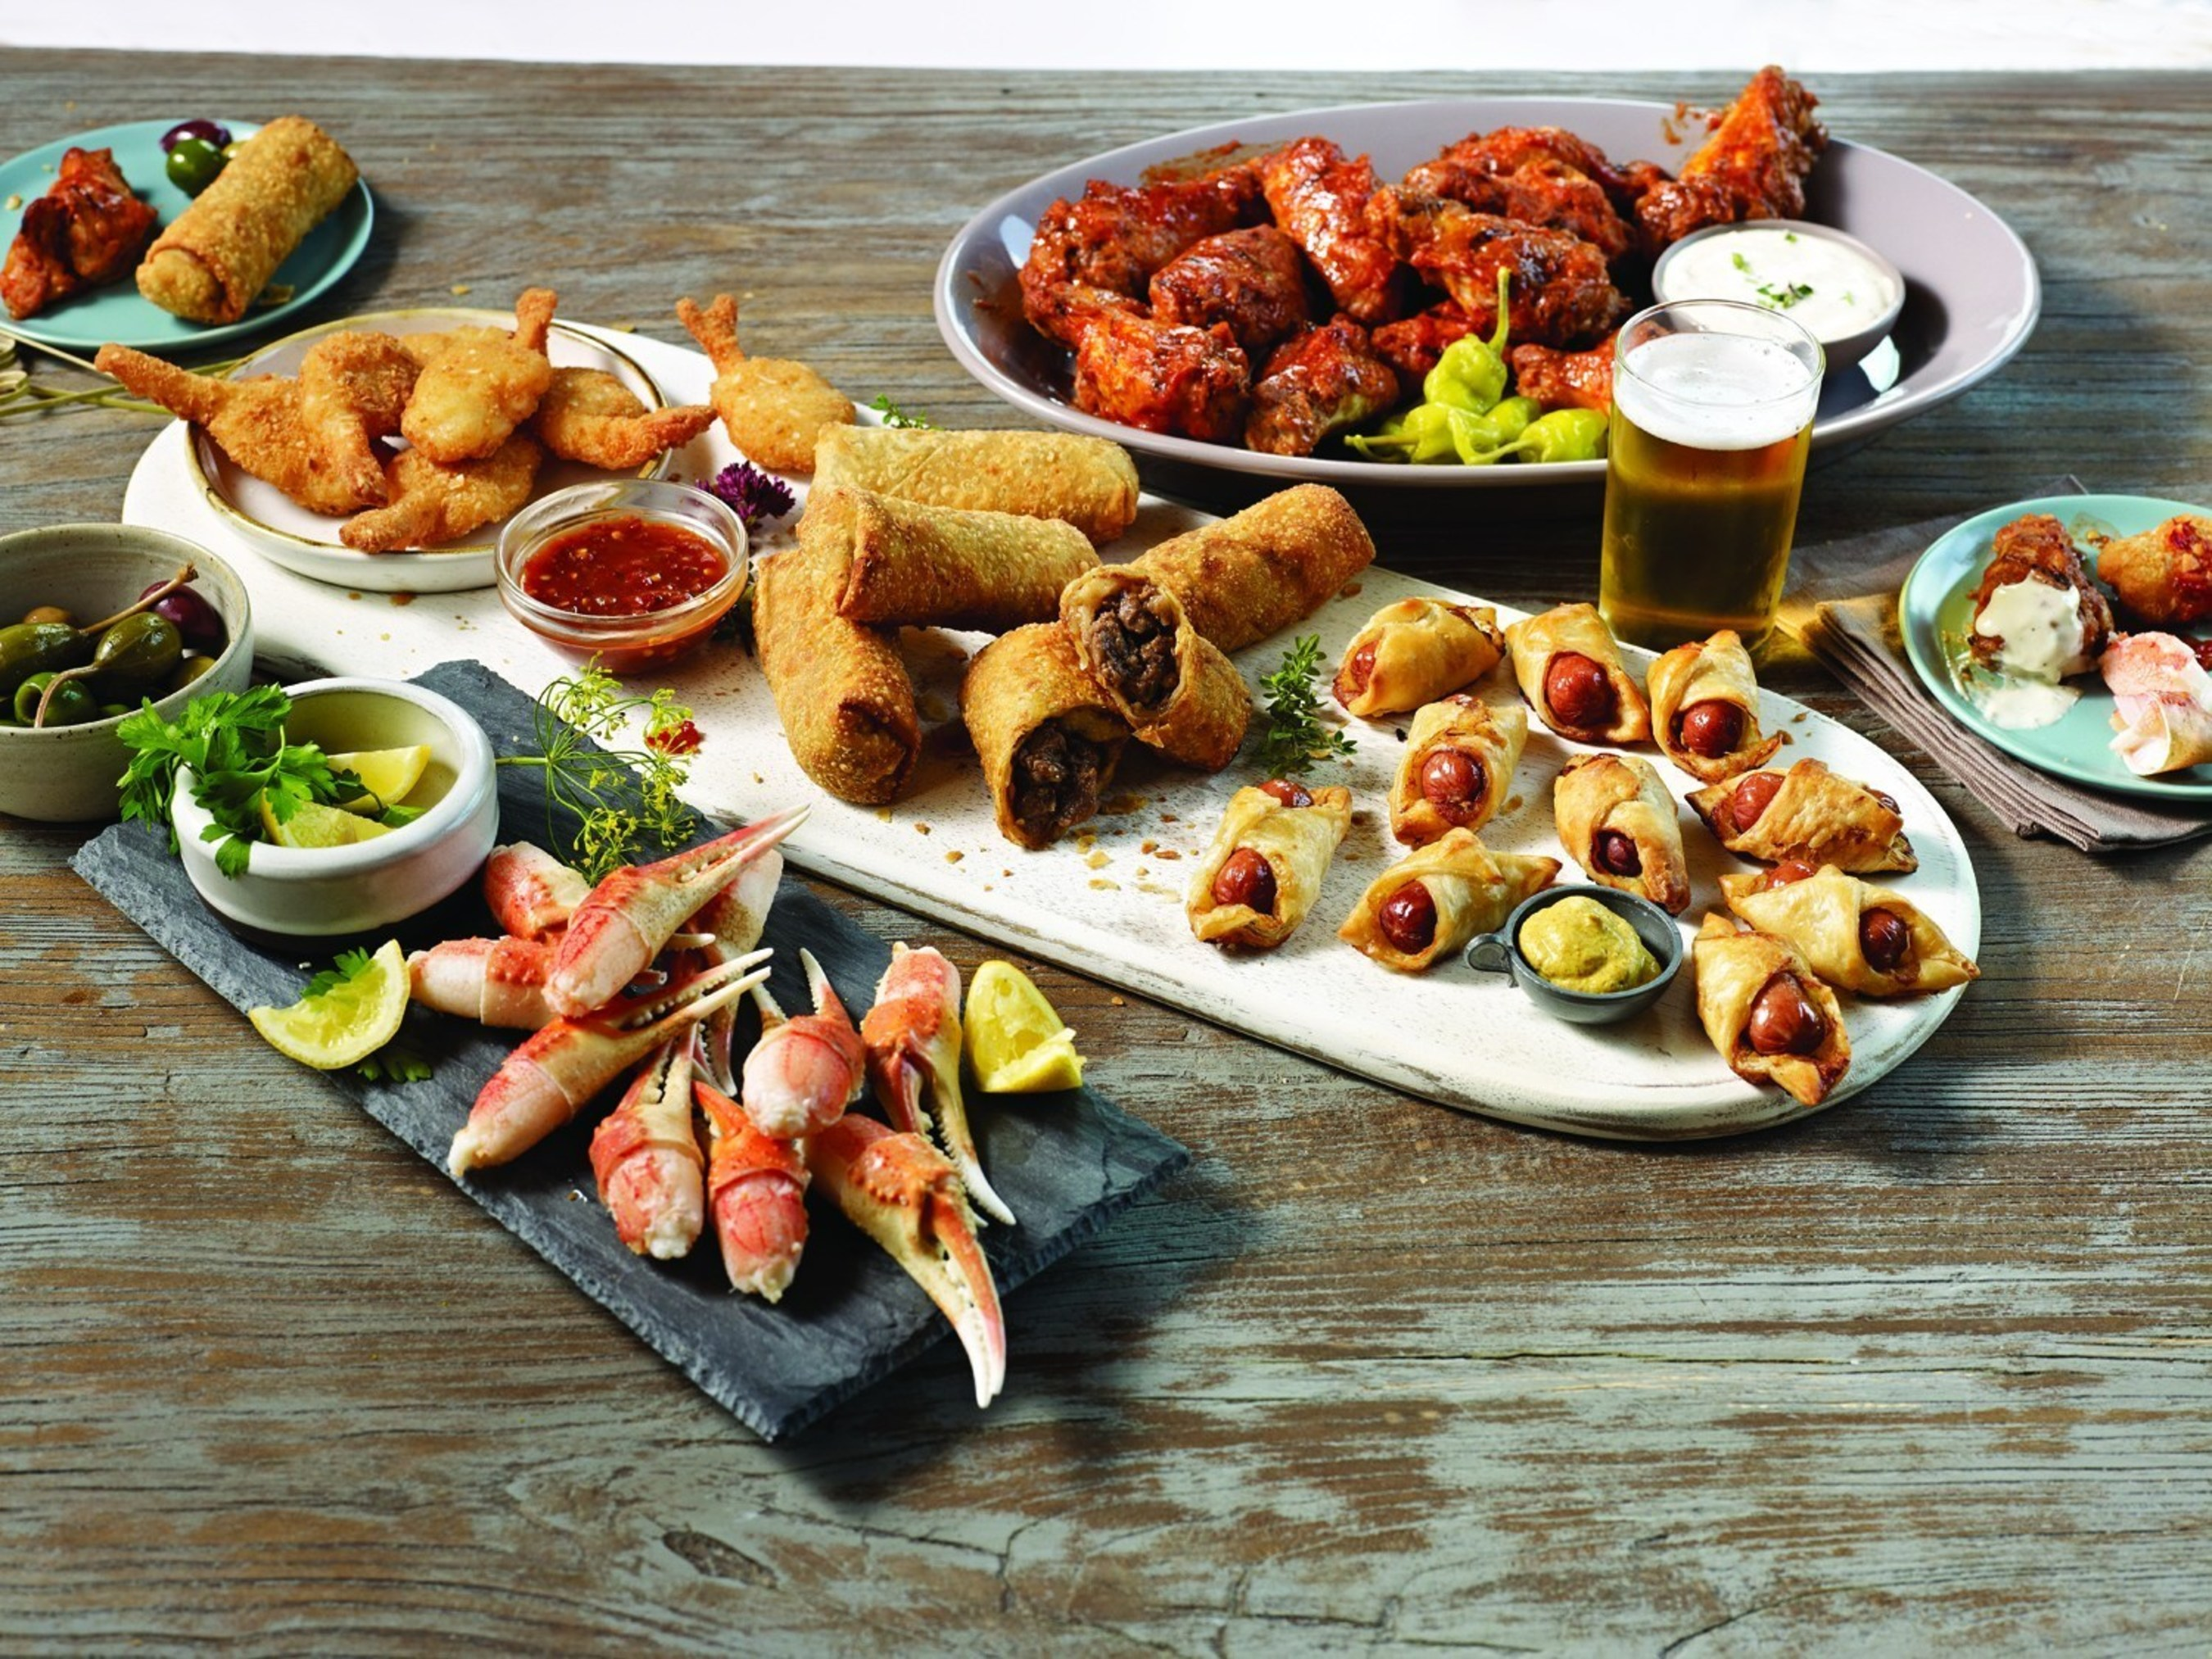 These apps from Omaha Steaks are so good, some folks might not even remember the game! This collection of gourmet favorites includes some of our finest World Port Seafood - sweet, crispy Coconut Shrimp and rich cracked Snow Crab Claws - along with plenty of our perfect Buffalo Wings and world-famous Franks in a Blanket. And, try this - the incredible, cross-cultural flavor of Omaha Steaks Filet Mignon Spring Rolls. What game?